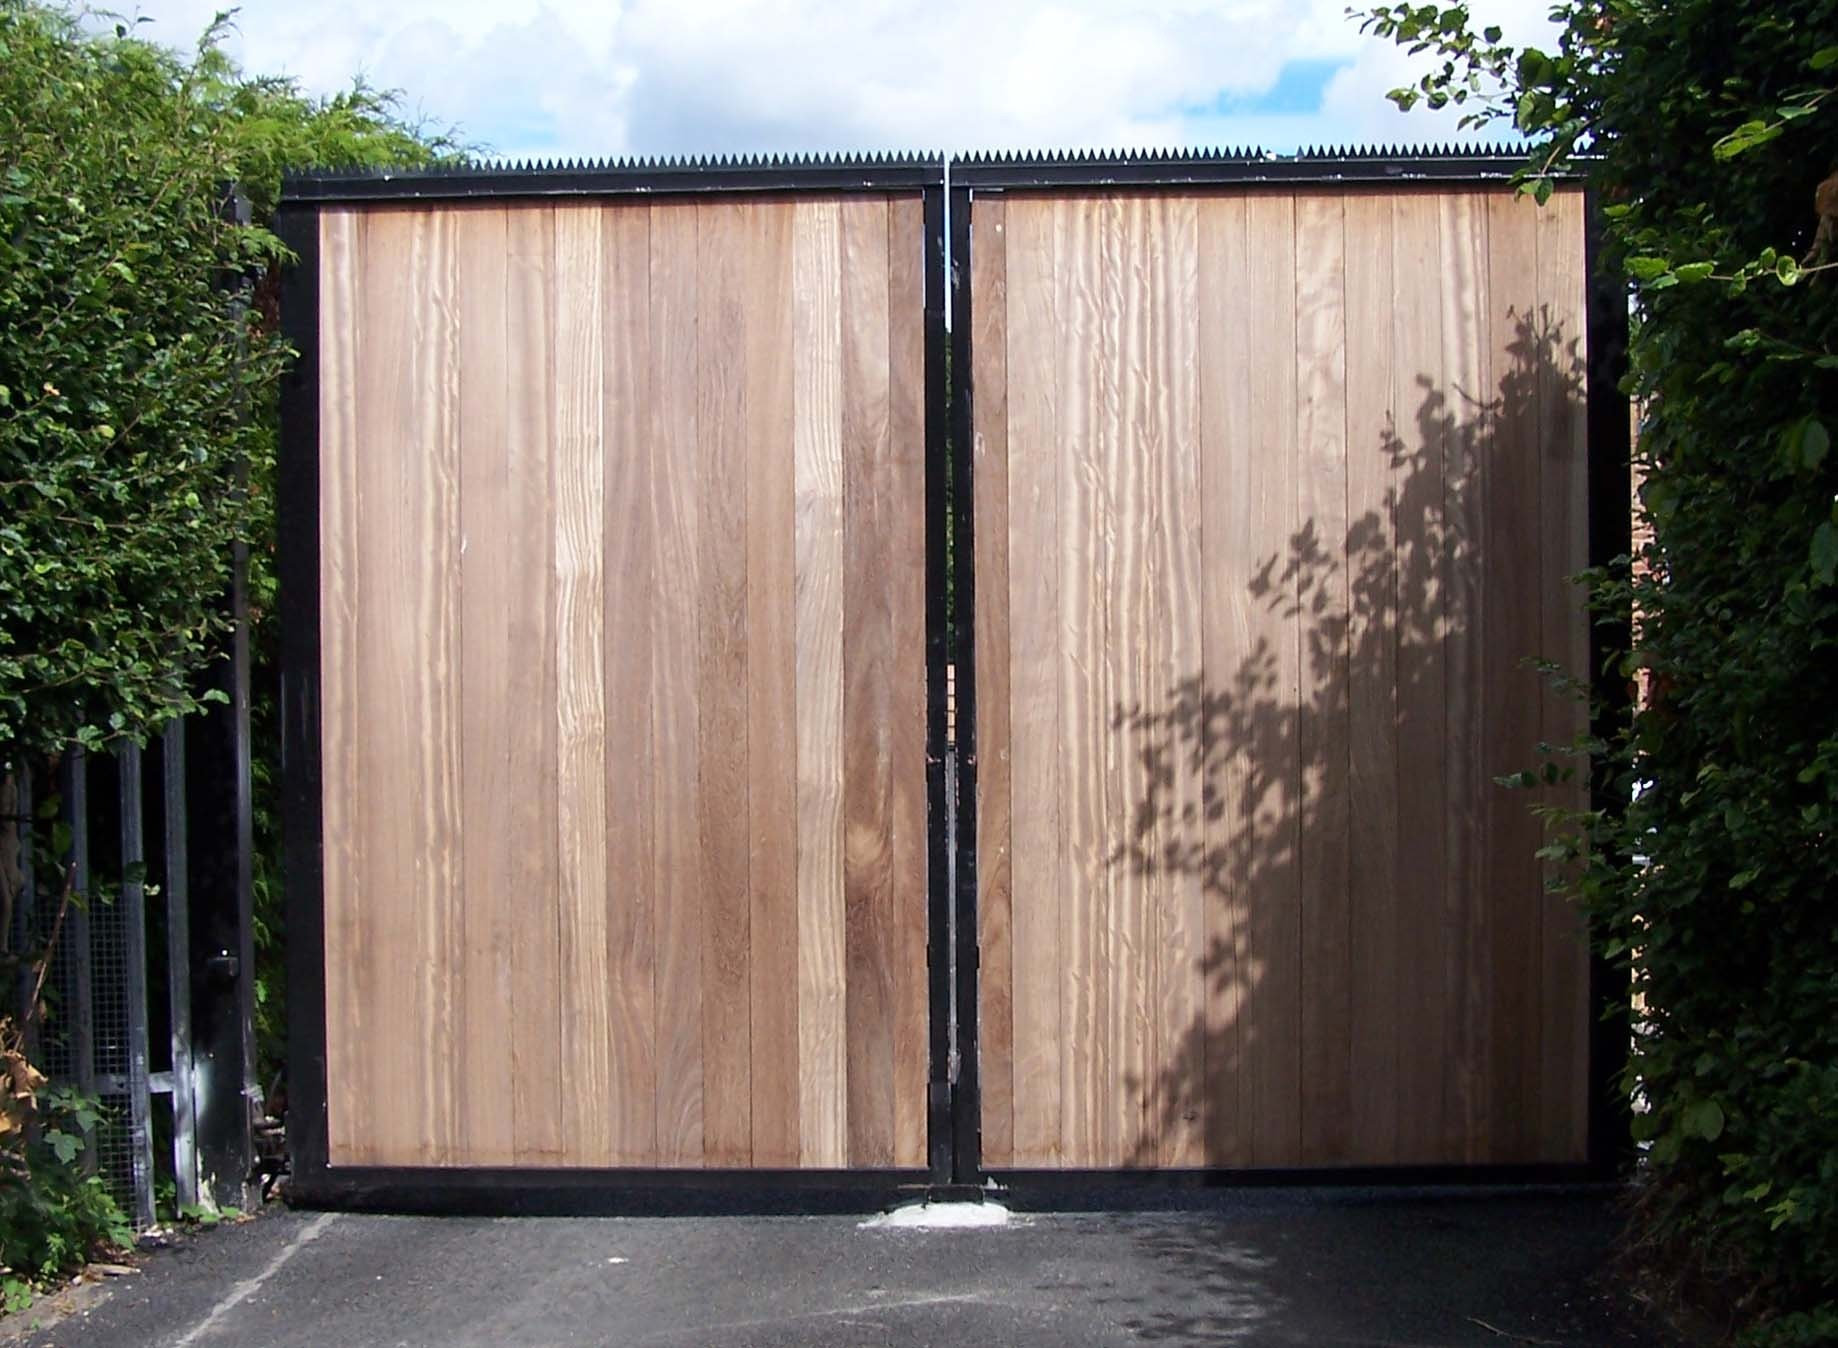 Hinged/Swing Gates - Welcome to Frontier Pitts